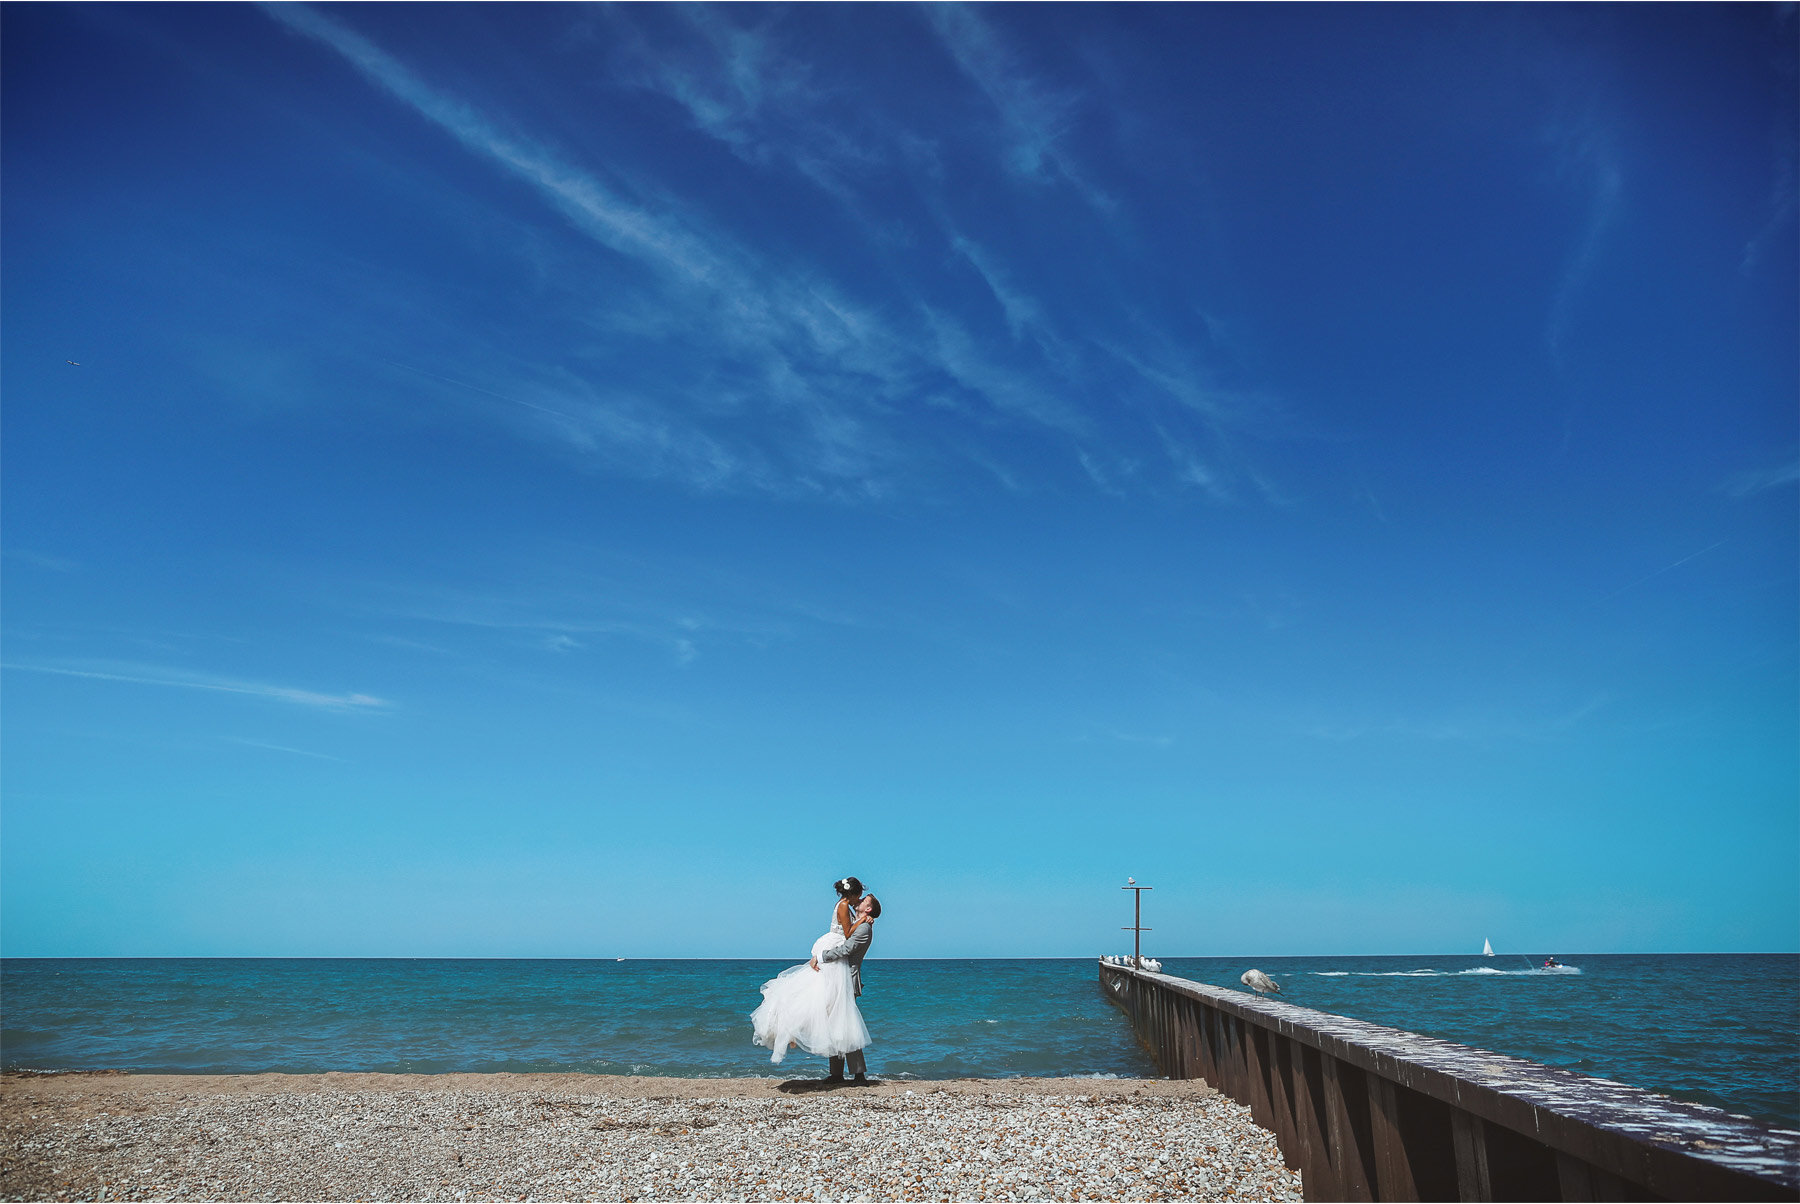 12-Wedding-by-Andrew-Vick-Photography-Chicago-Illinois-Groom-Bride-Shore-Beach-Lake-Michigan-Ashley-and-Nicholas.jpg